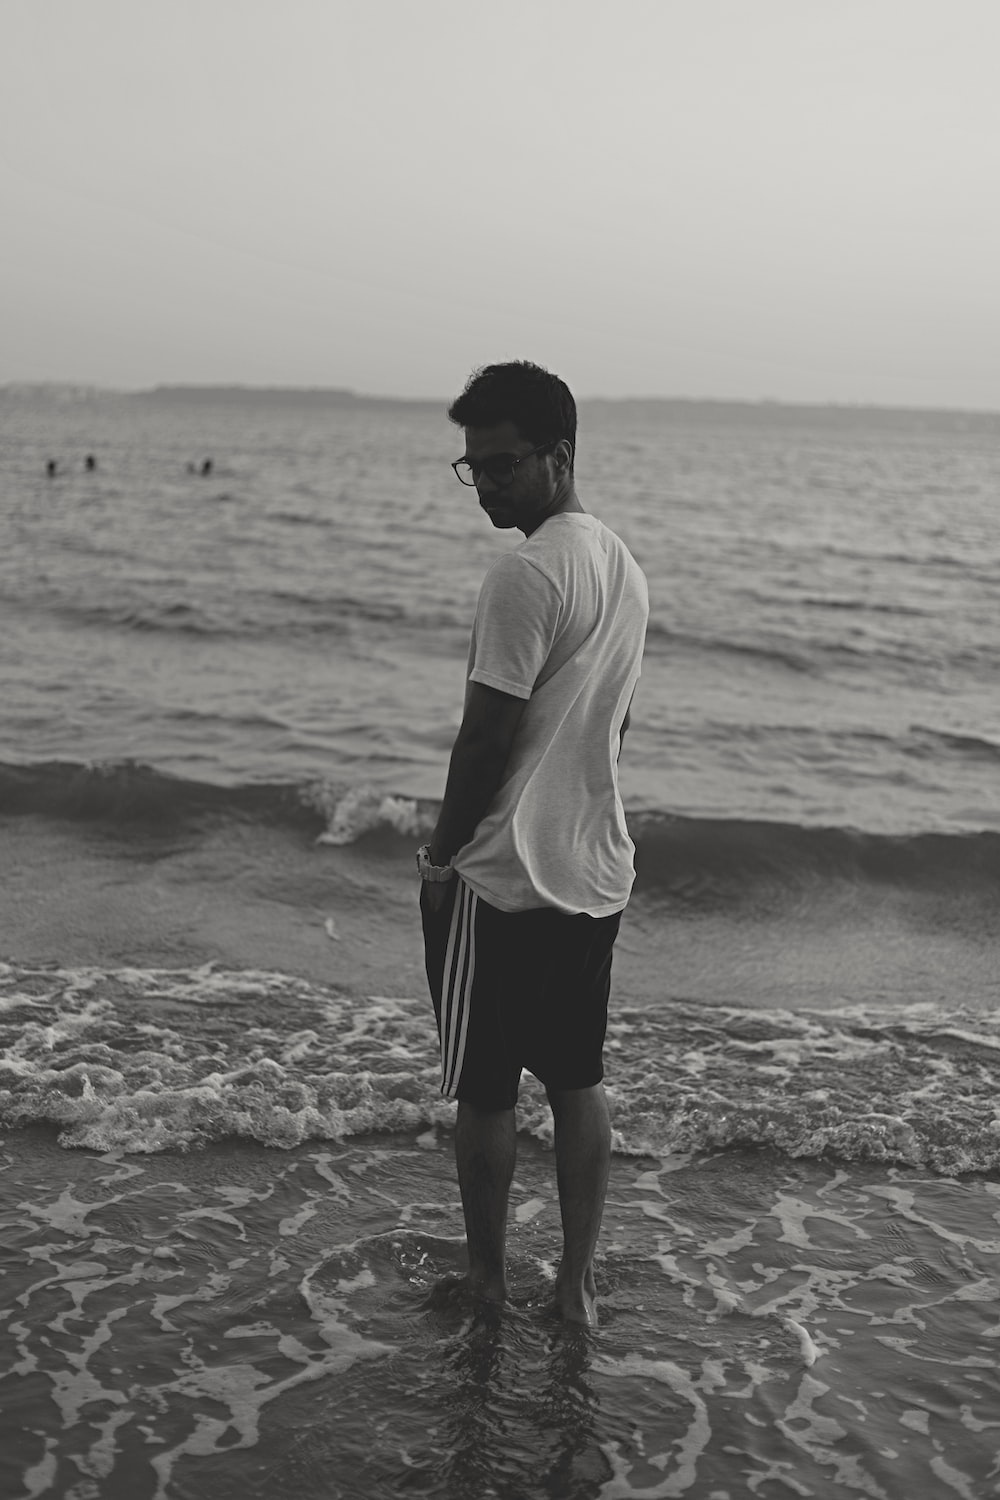 man in white shirt and black shorts standing on beach during daytime